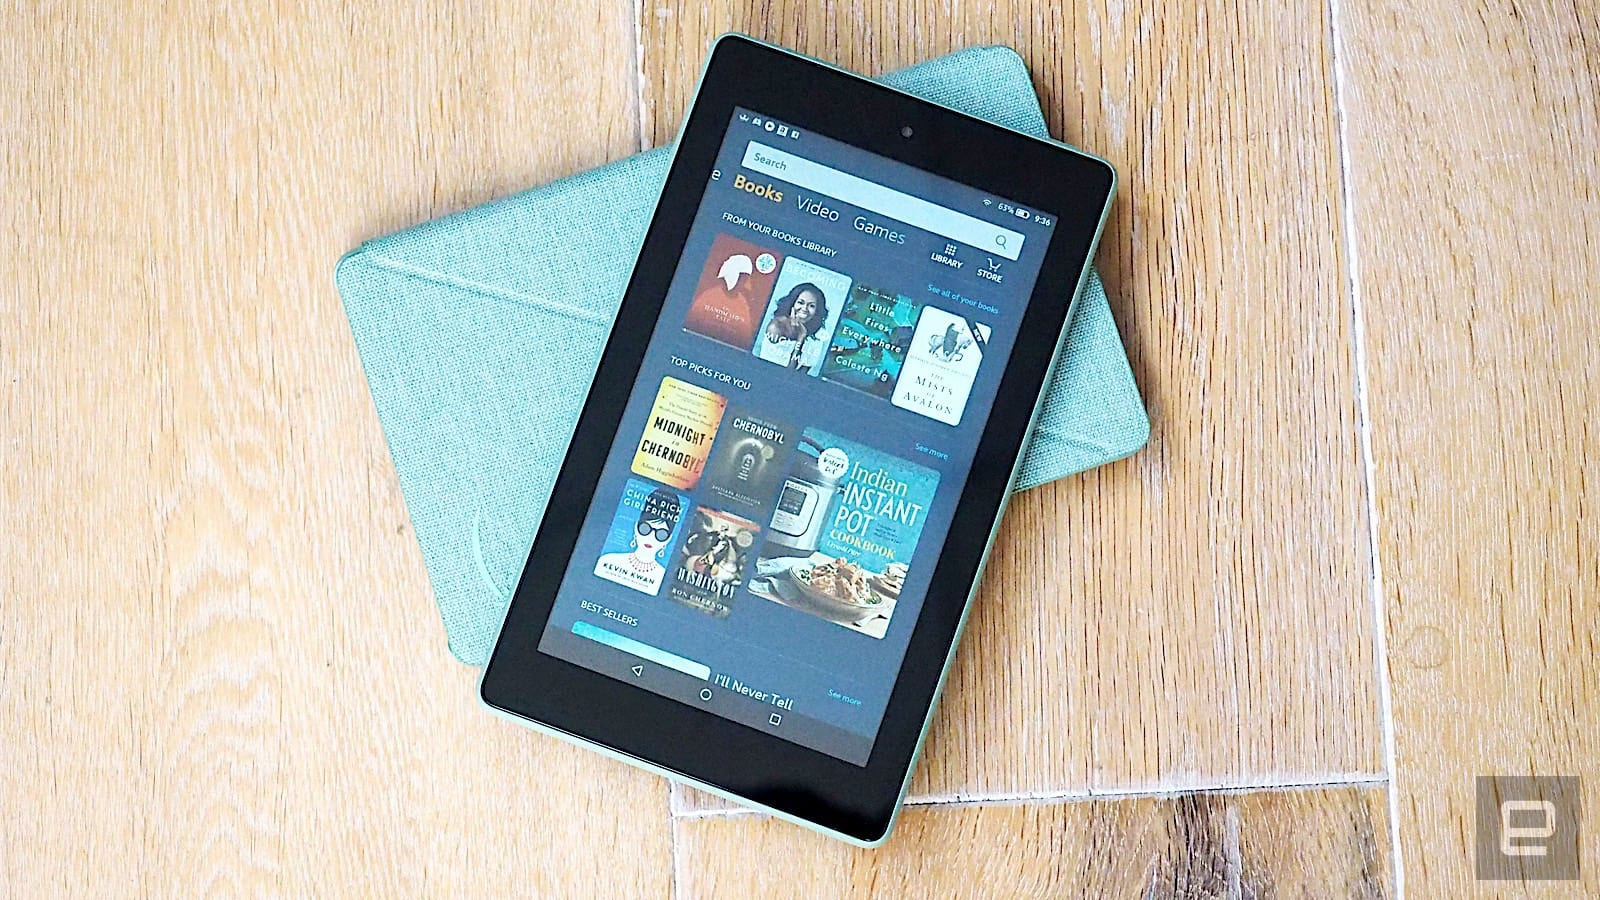 ad15e8d58410 Amazon Fire 7 (2019): You get what you pay for